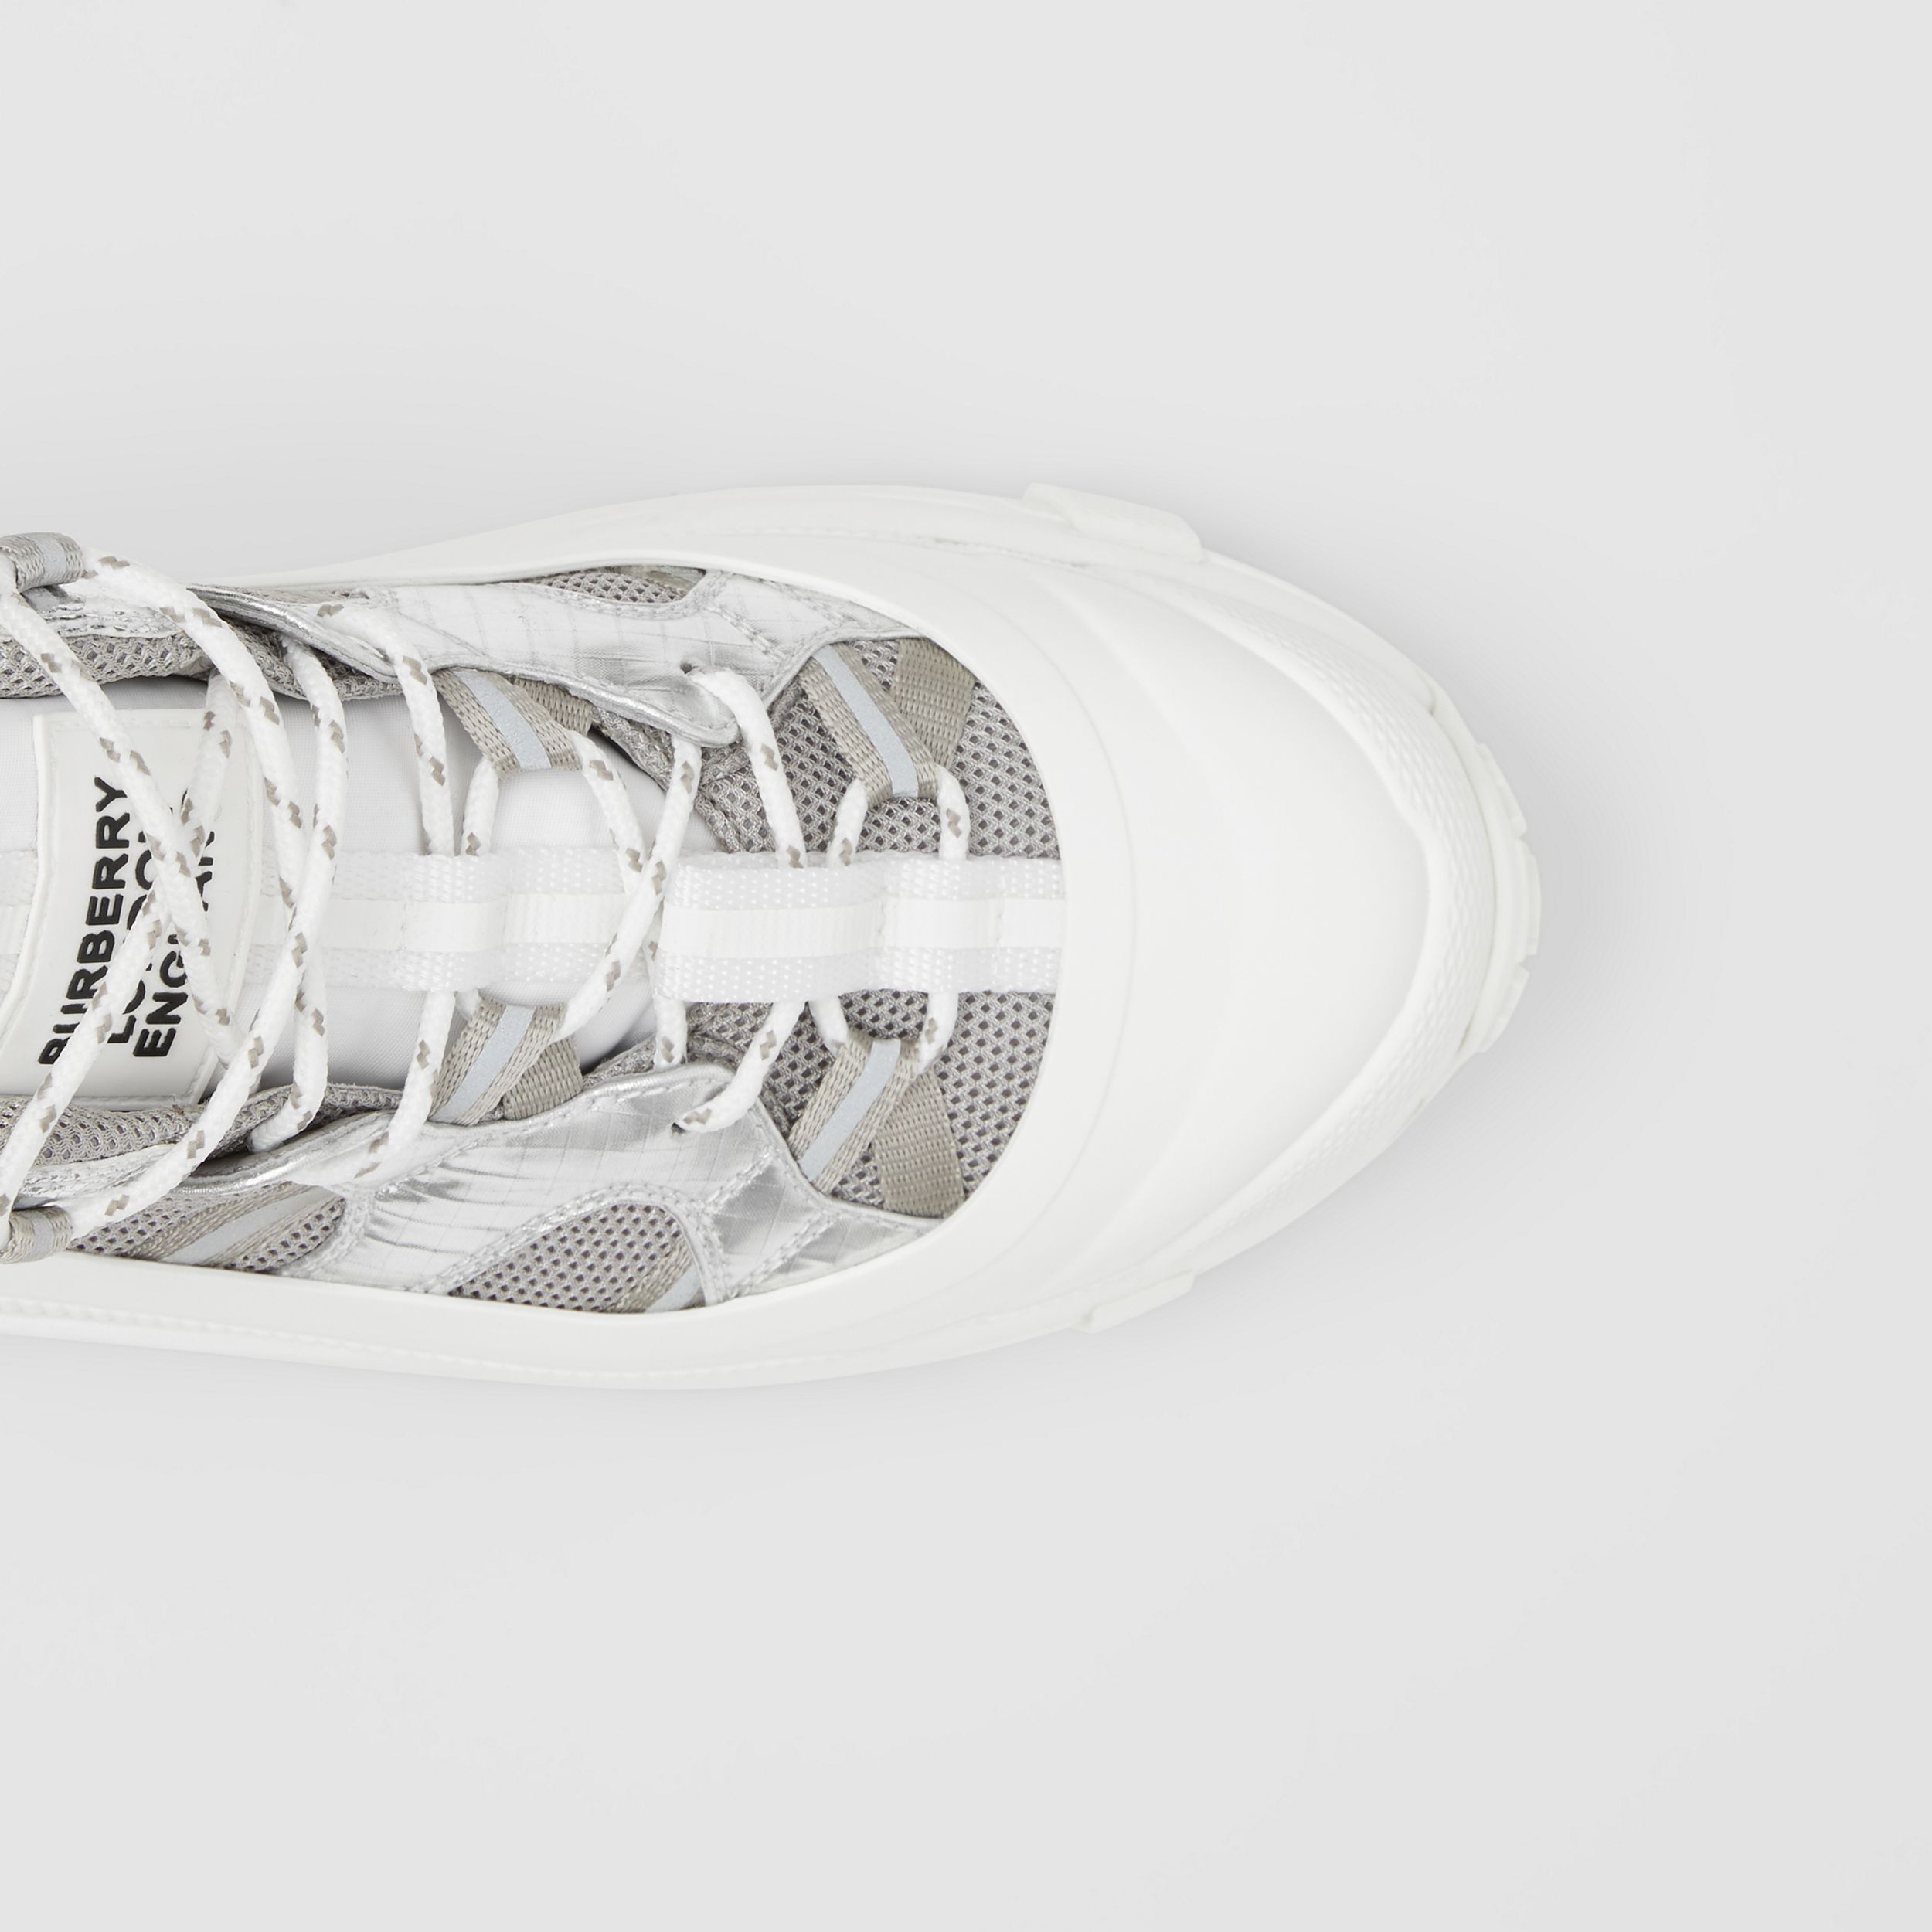 Metallic Leather, Nylon and Mesh Arthur Sneakers in Silver - Women | Burberry - 2